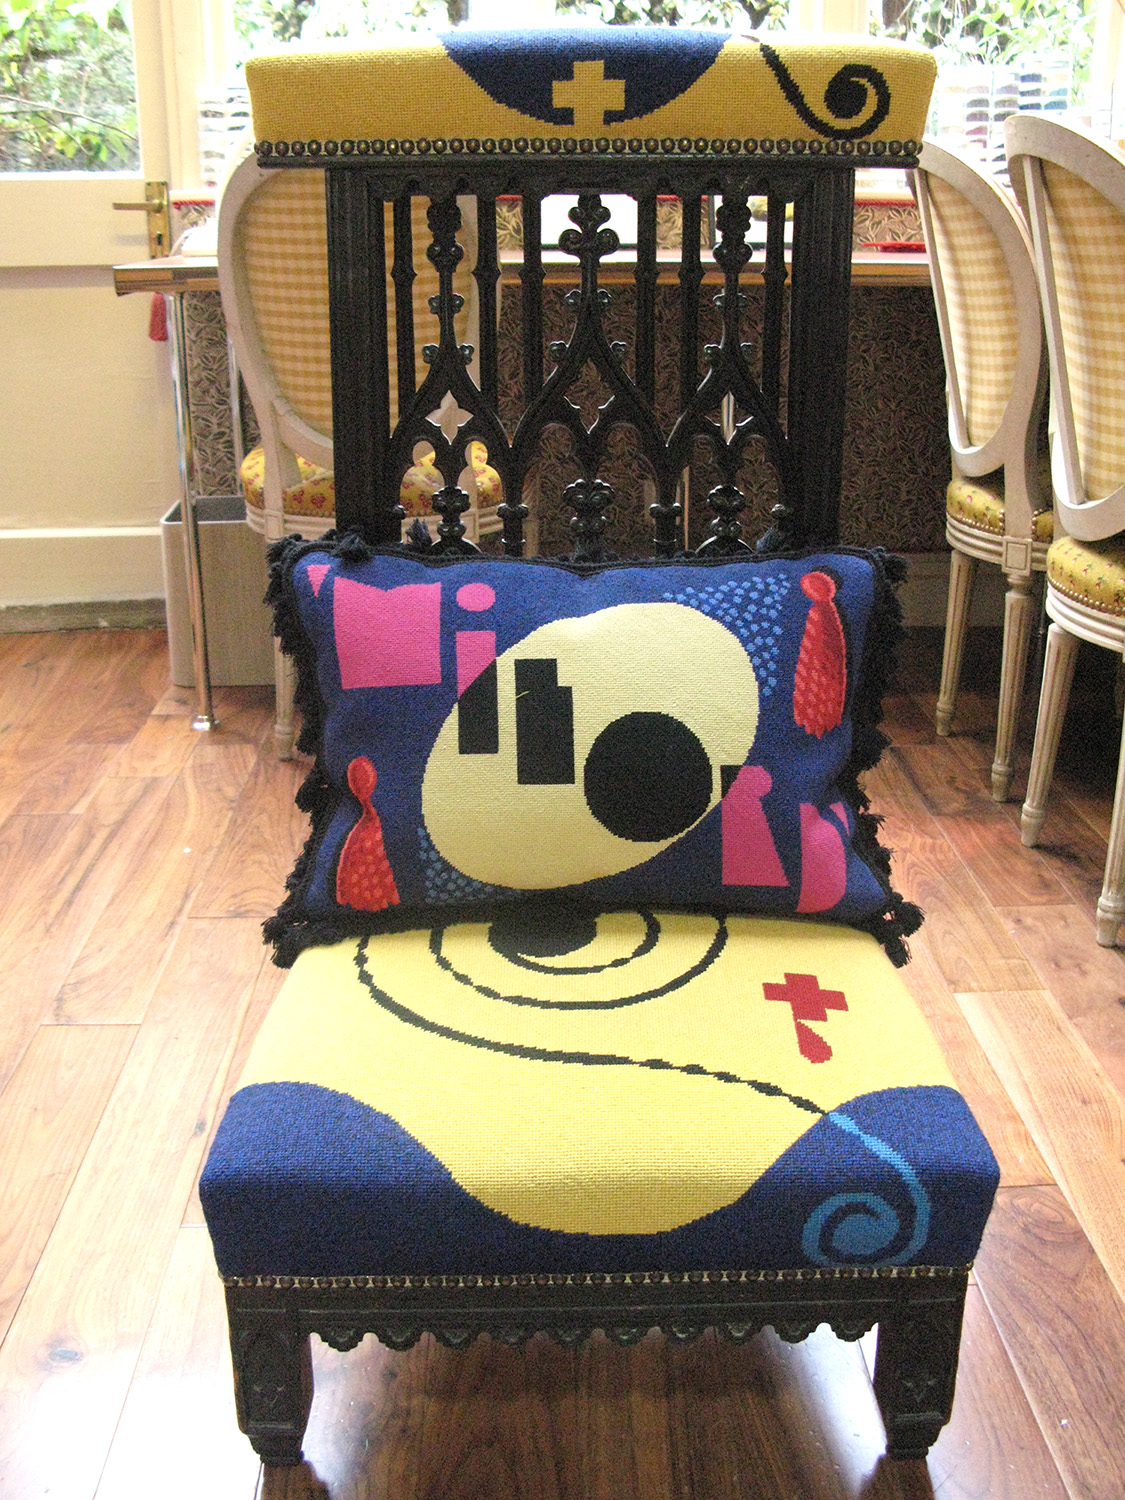 Milord cushion on cover, both designed by Caulfield